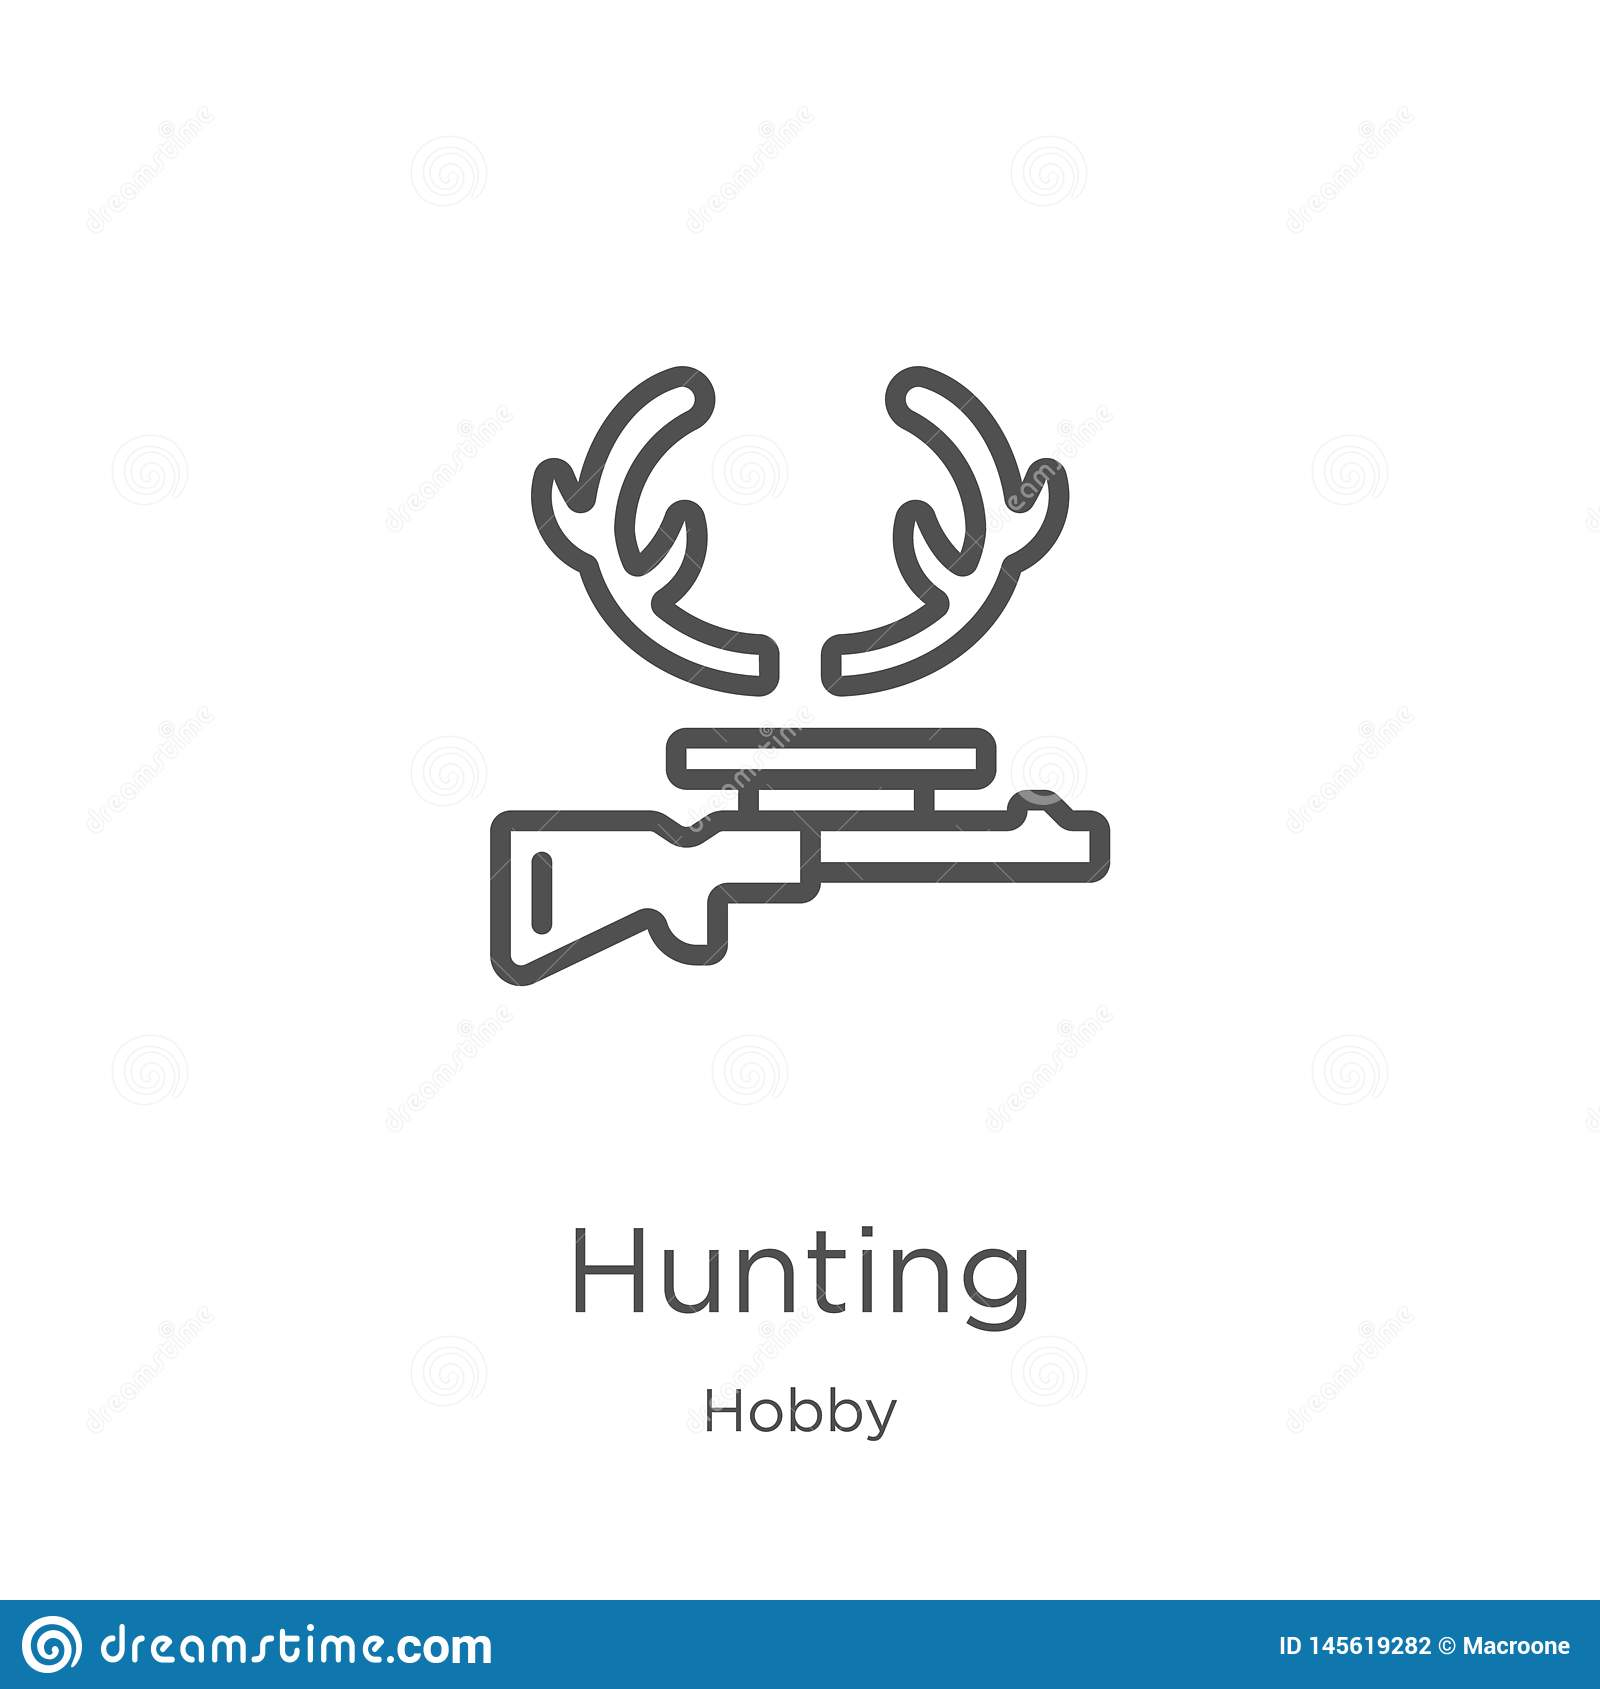 hunting icon vector from hobby collection. Thin line hunting outline icon vector illustration. Outline, thin line hunting icon for